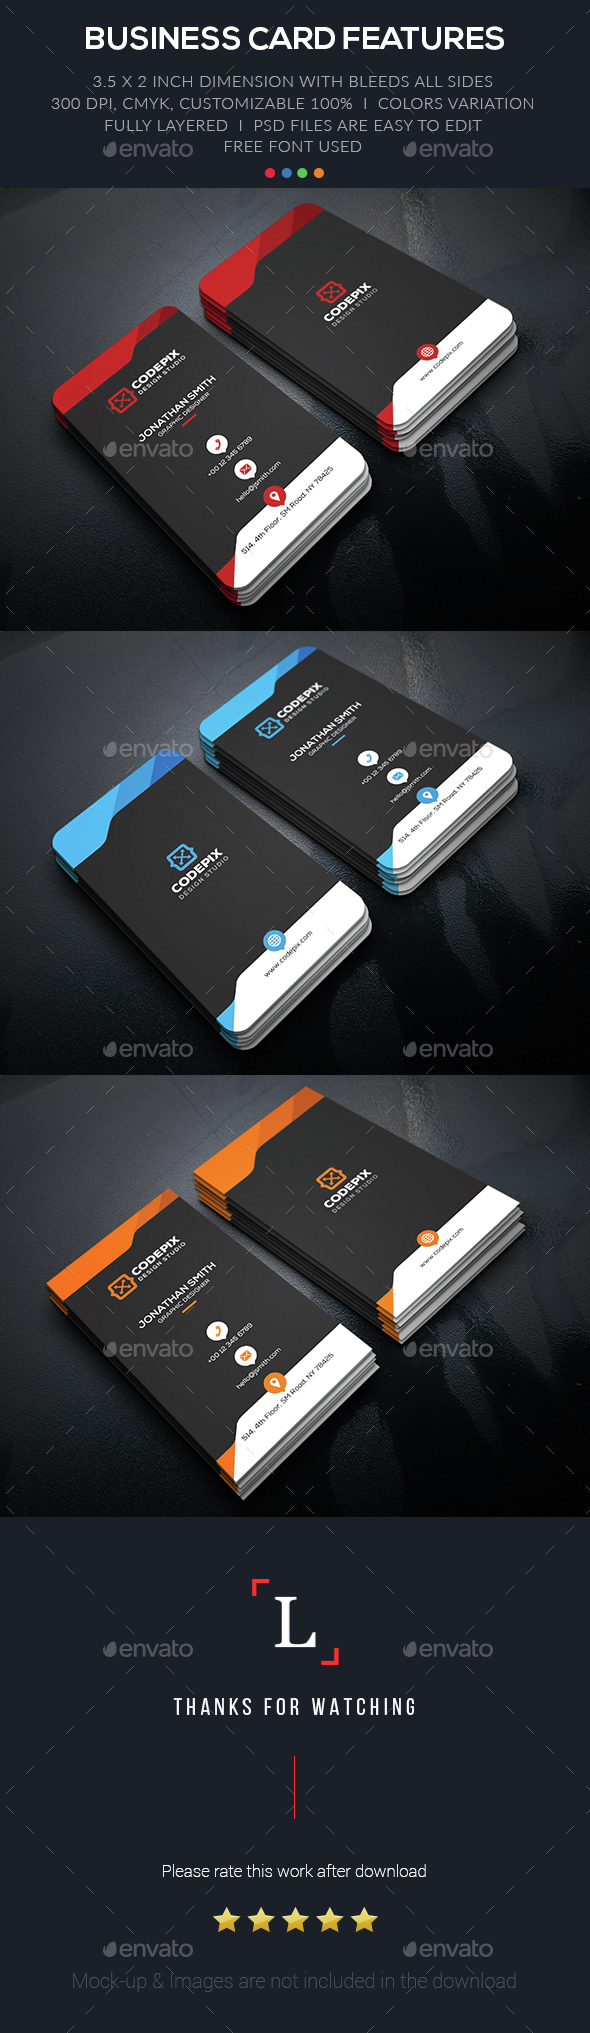 Shape Creative Business Card - Business Cards Print Templates